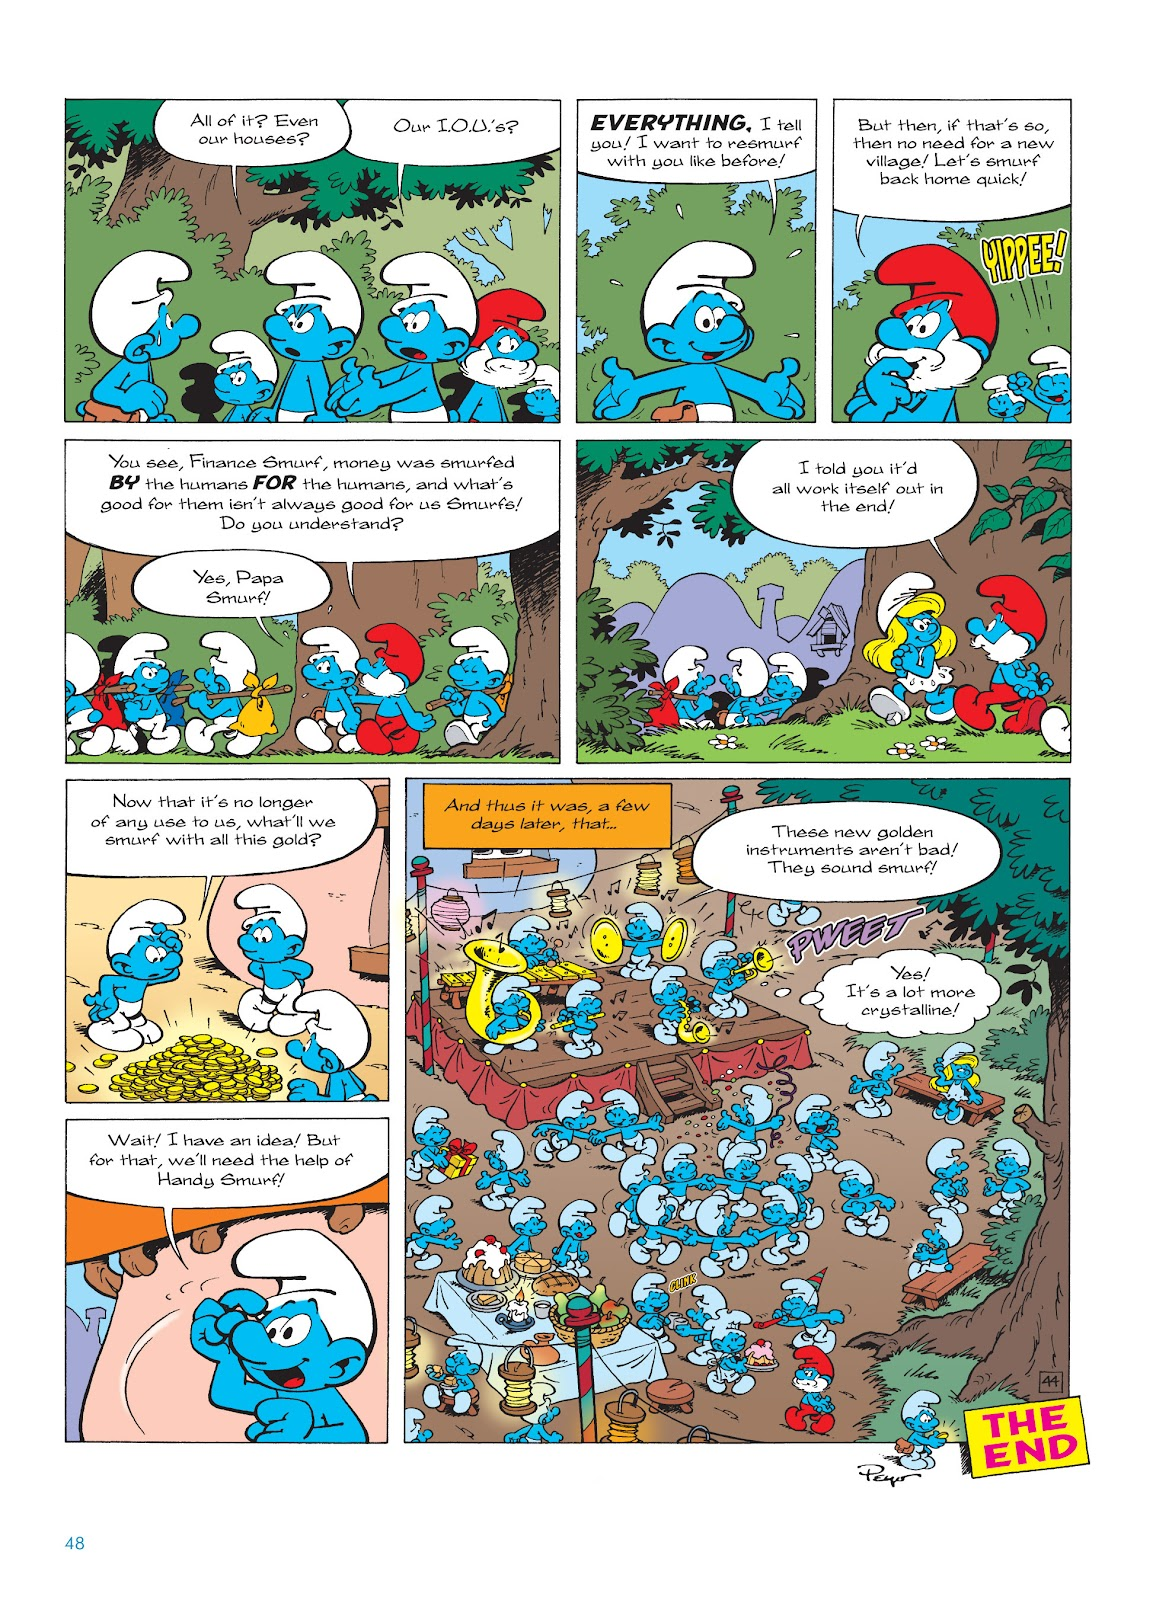 Read online The Smurfs comic -  Issue #18 - 48